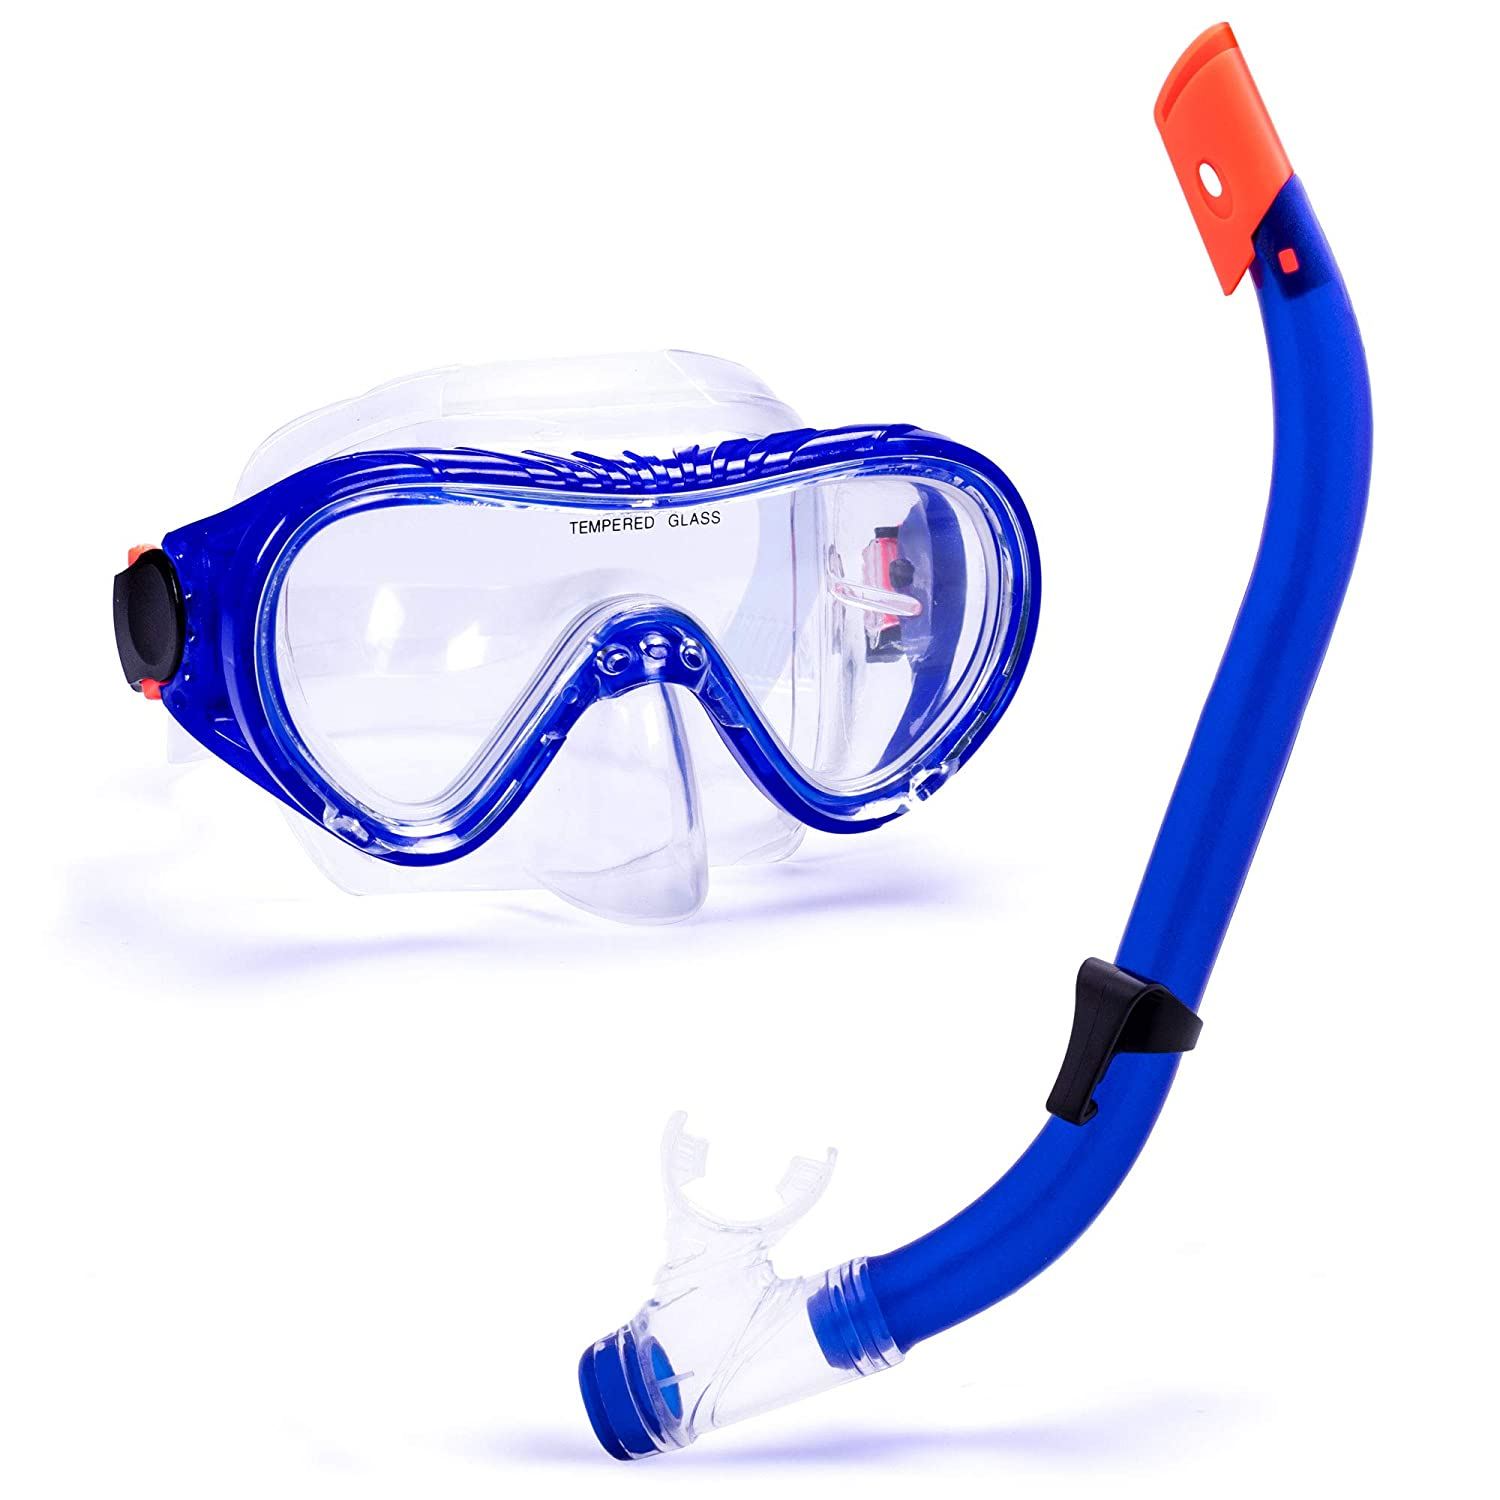 Beach Days Crown Sporting Goods Junior Semi-Dry Diving /& Snorkel Set or Aquatic Adventures PVC Skirting and Mouthpiece Child Safe Adjustable Face Mask Tempered Shatterproof Glass Vacations